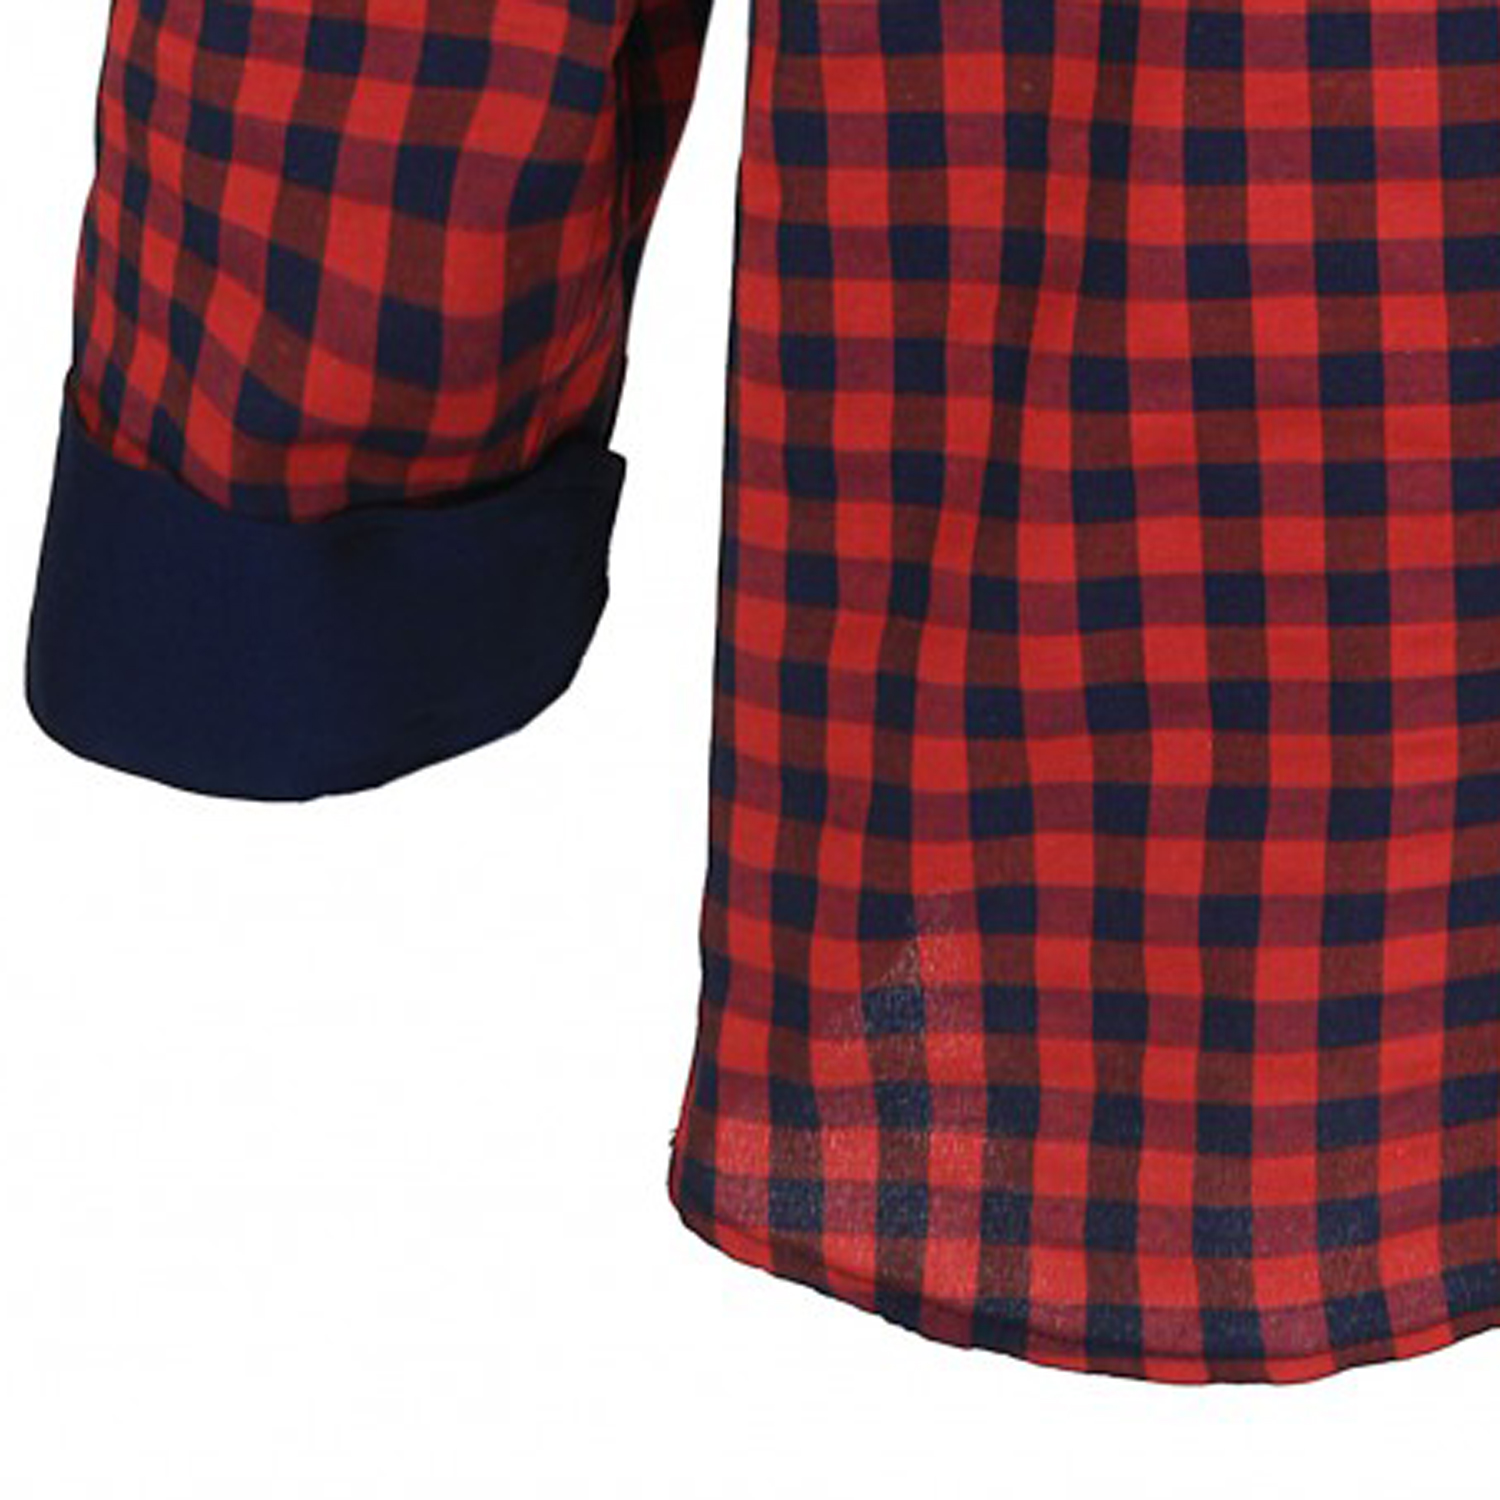 Detail Image to Checked shirt by Lavecchia in oversize up to 7XL